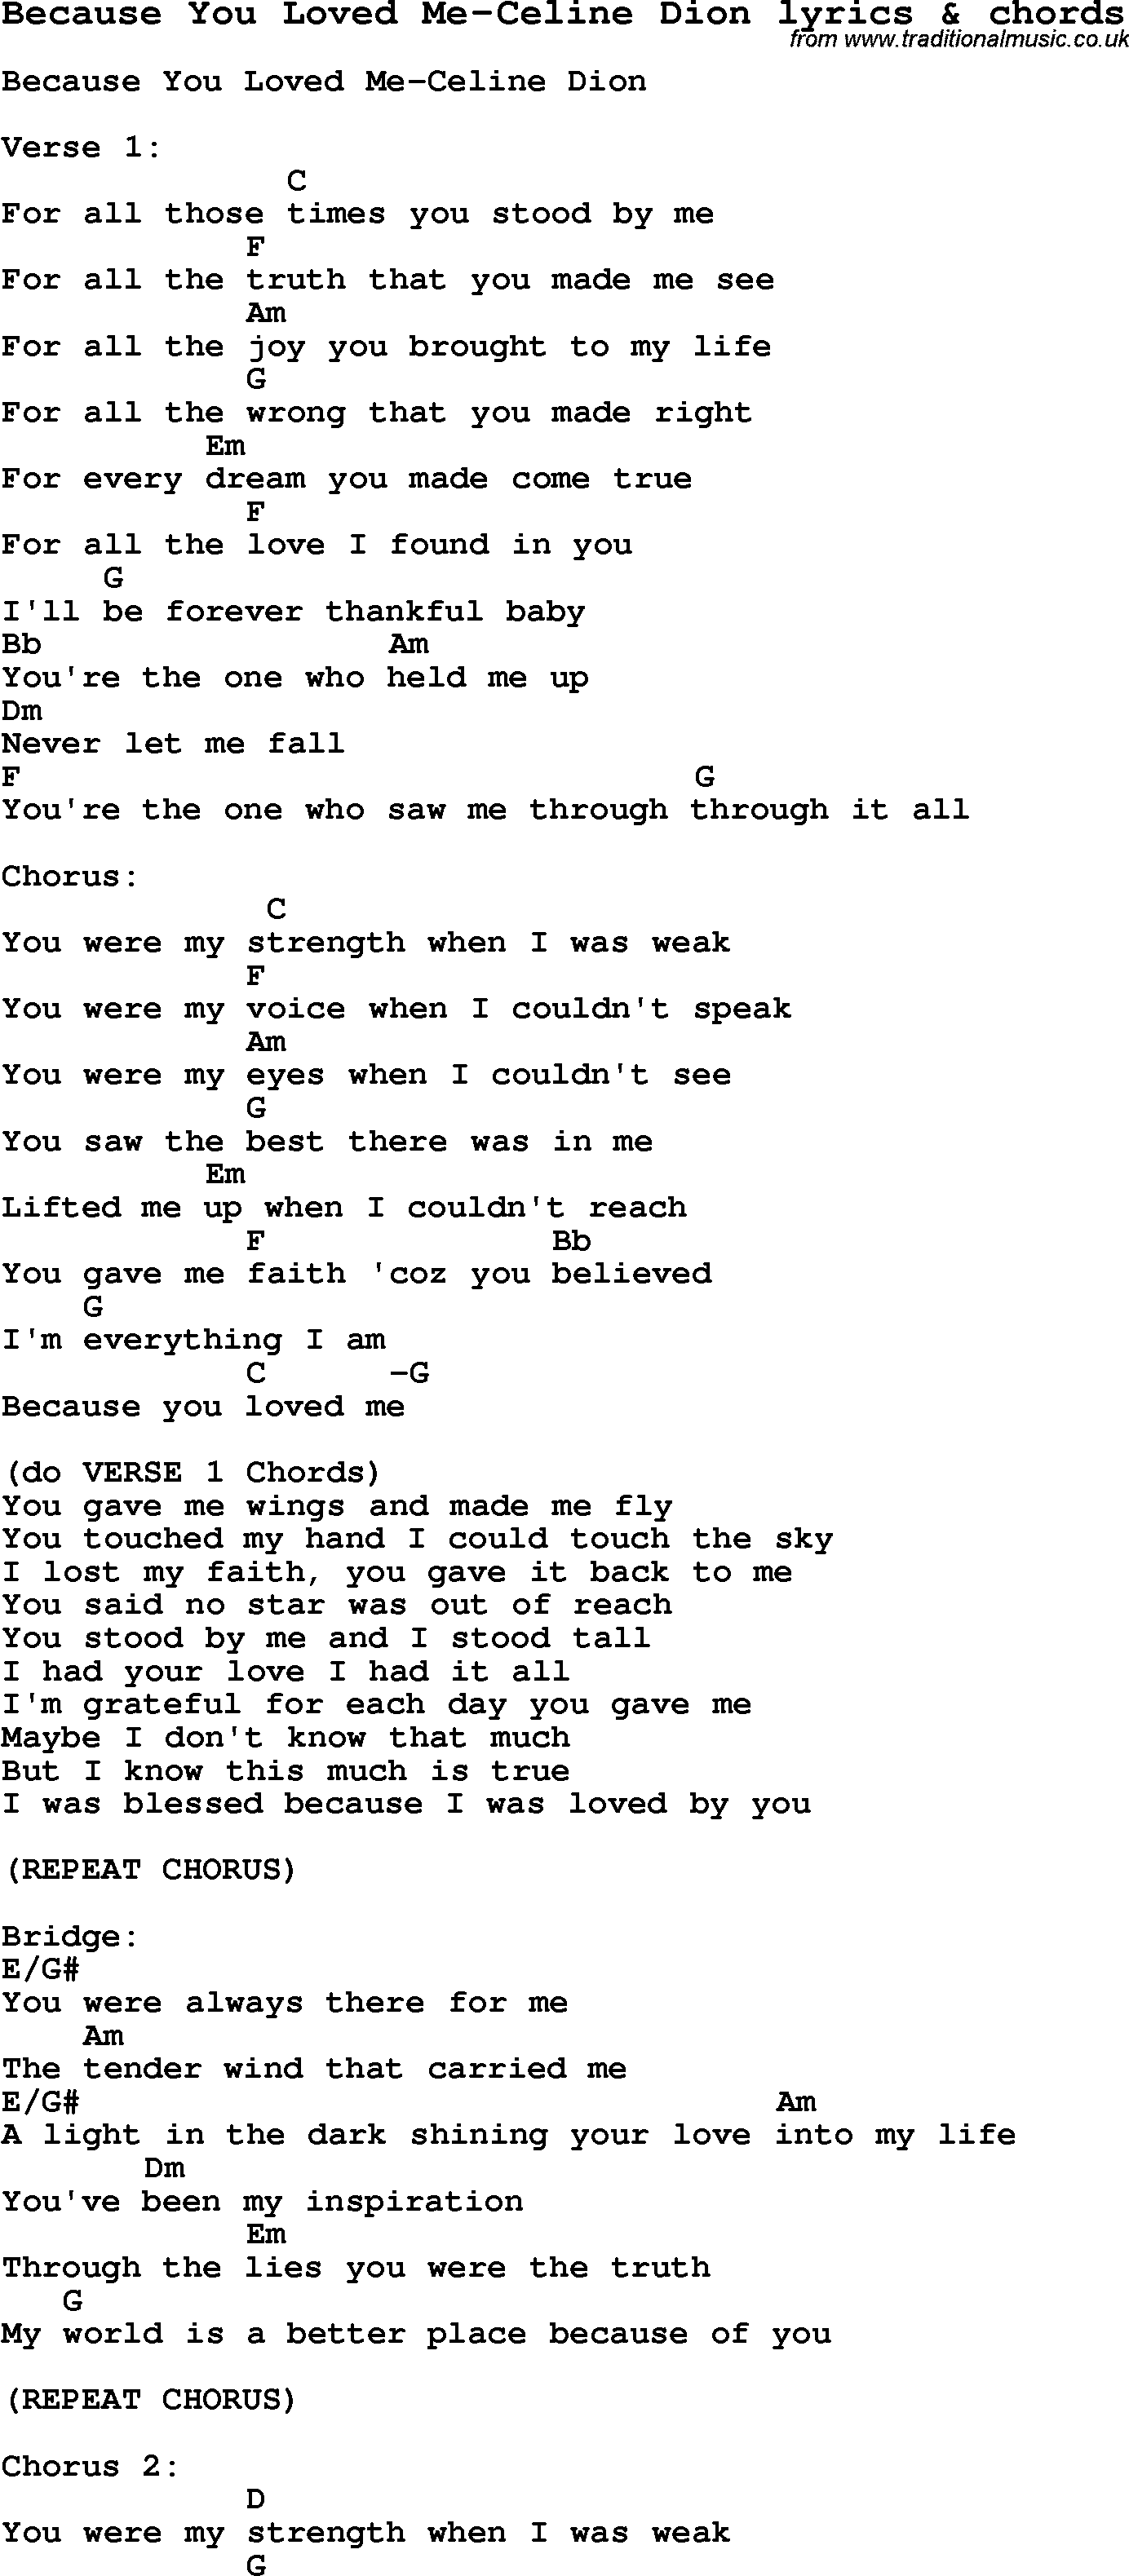 Love Song Lyrics for Because You Loved Me Celine Dion with chords for